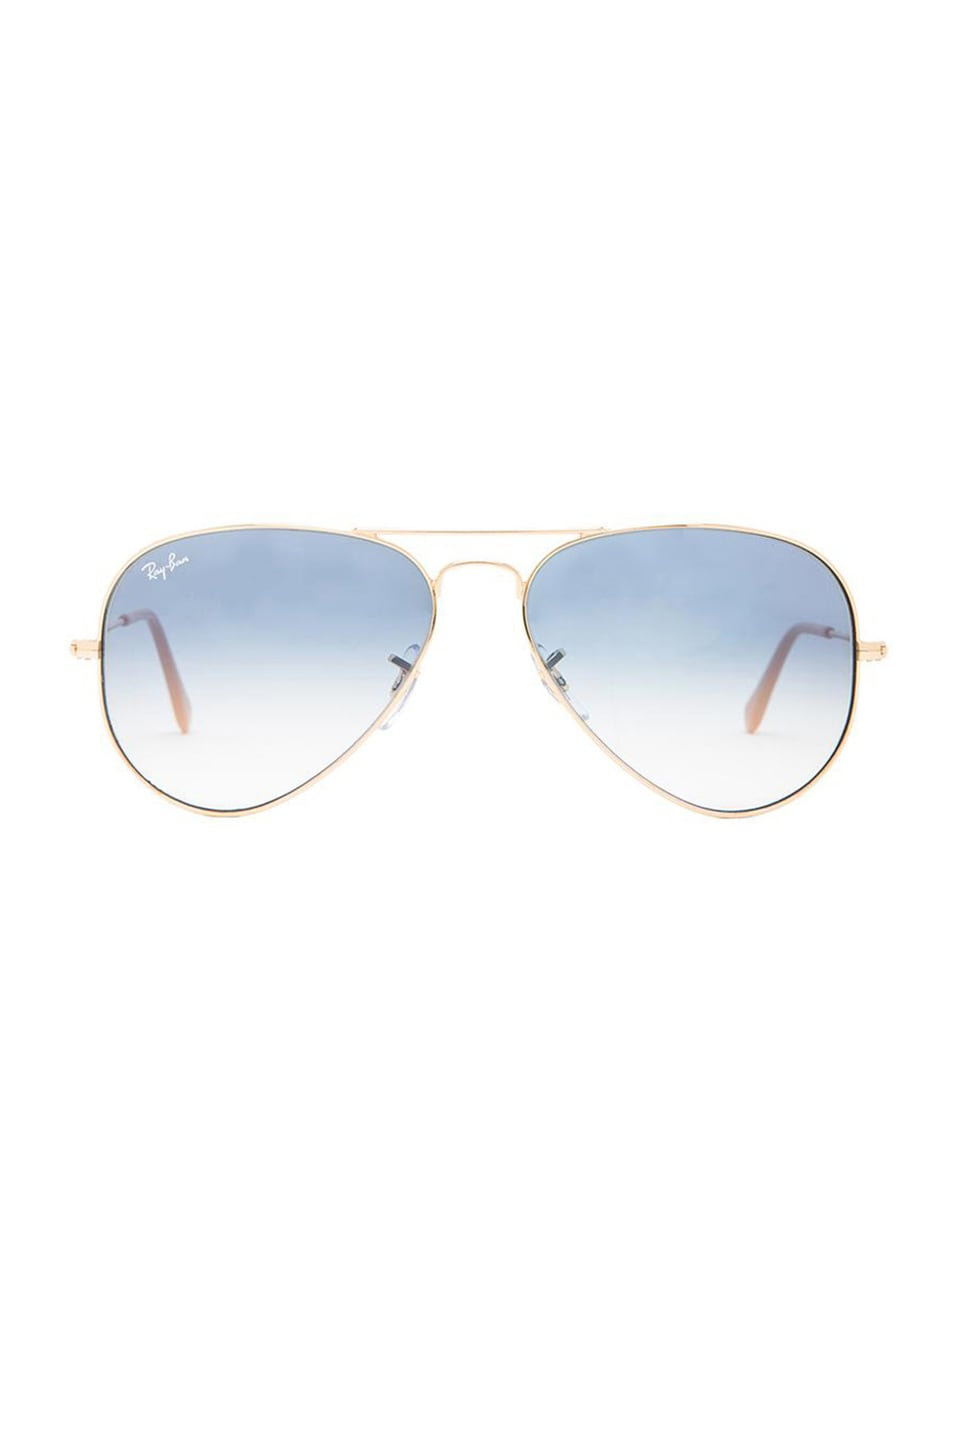 Ray-Ban Aviator en Arista and Gradient Light Blue